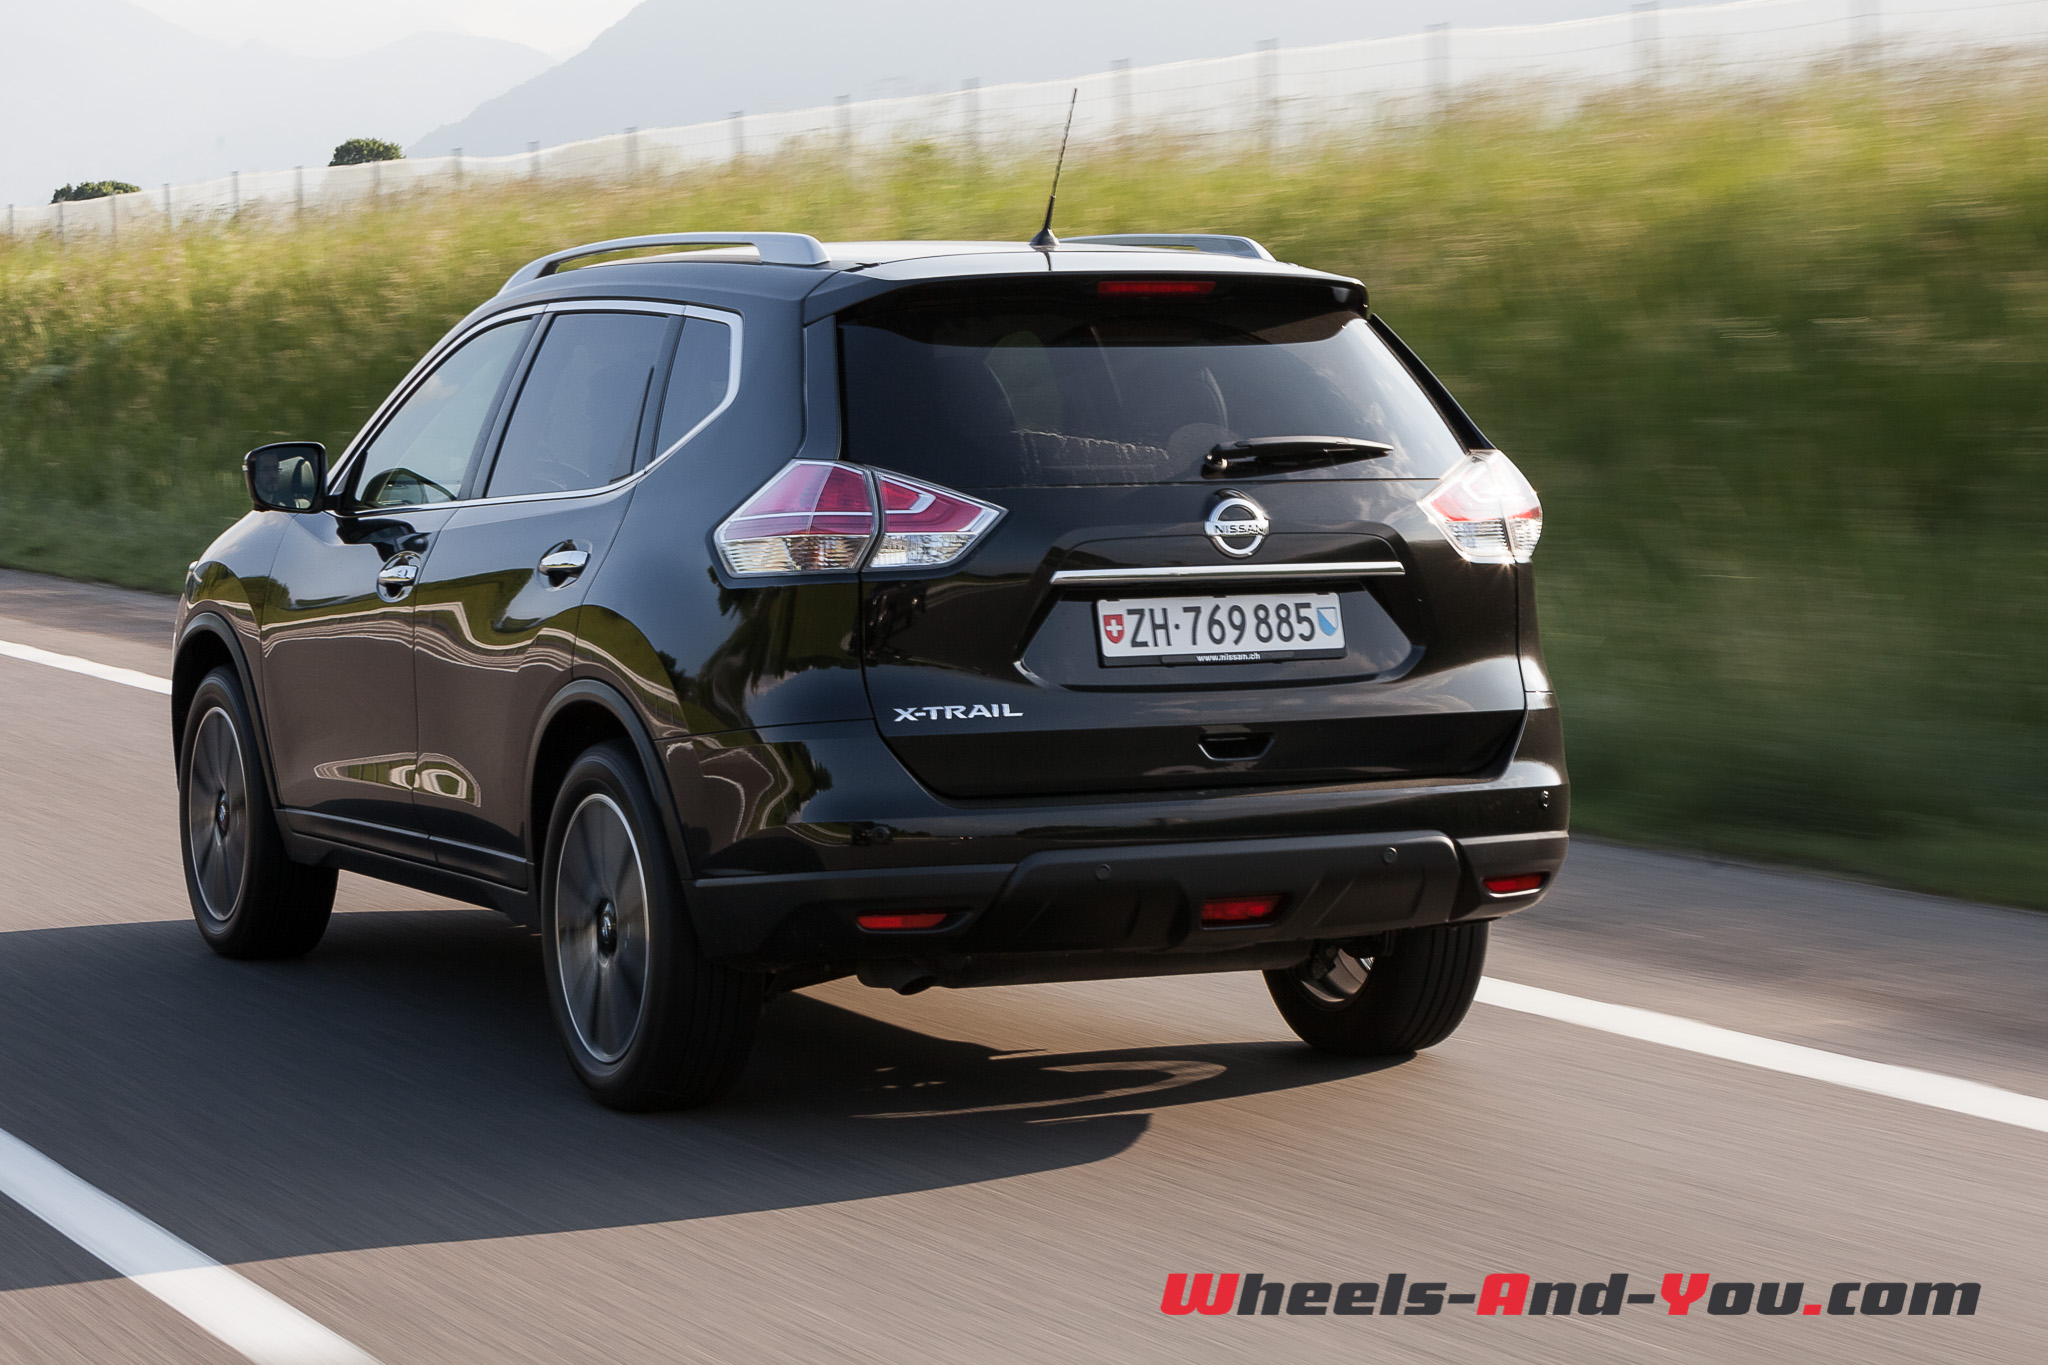 essai nissan x trail le retour d un aventurier en tenue de soir e wheels and. Black Bedroom Furniture Sets. Home Design Ideas